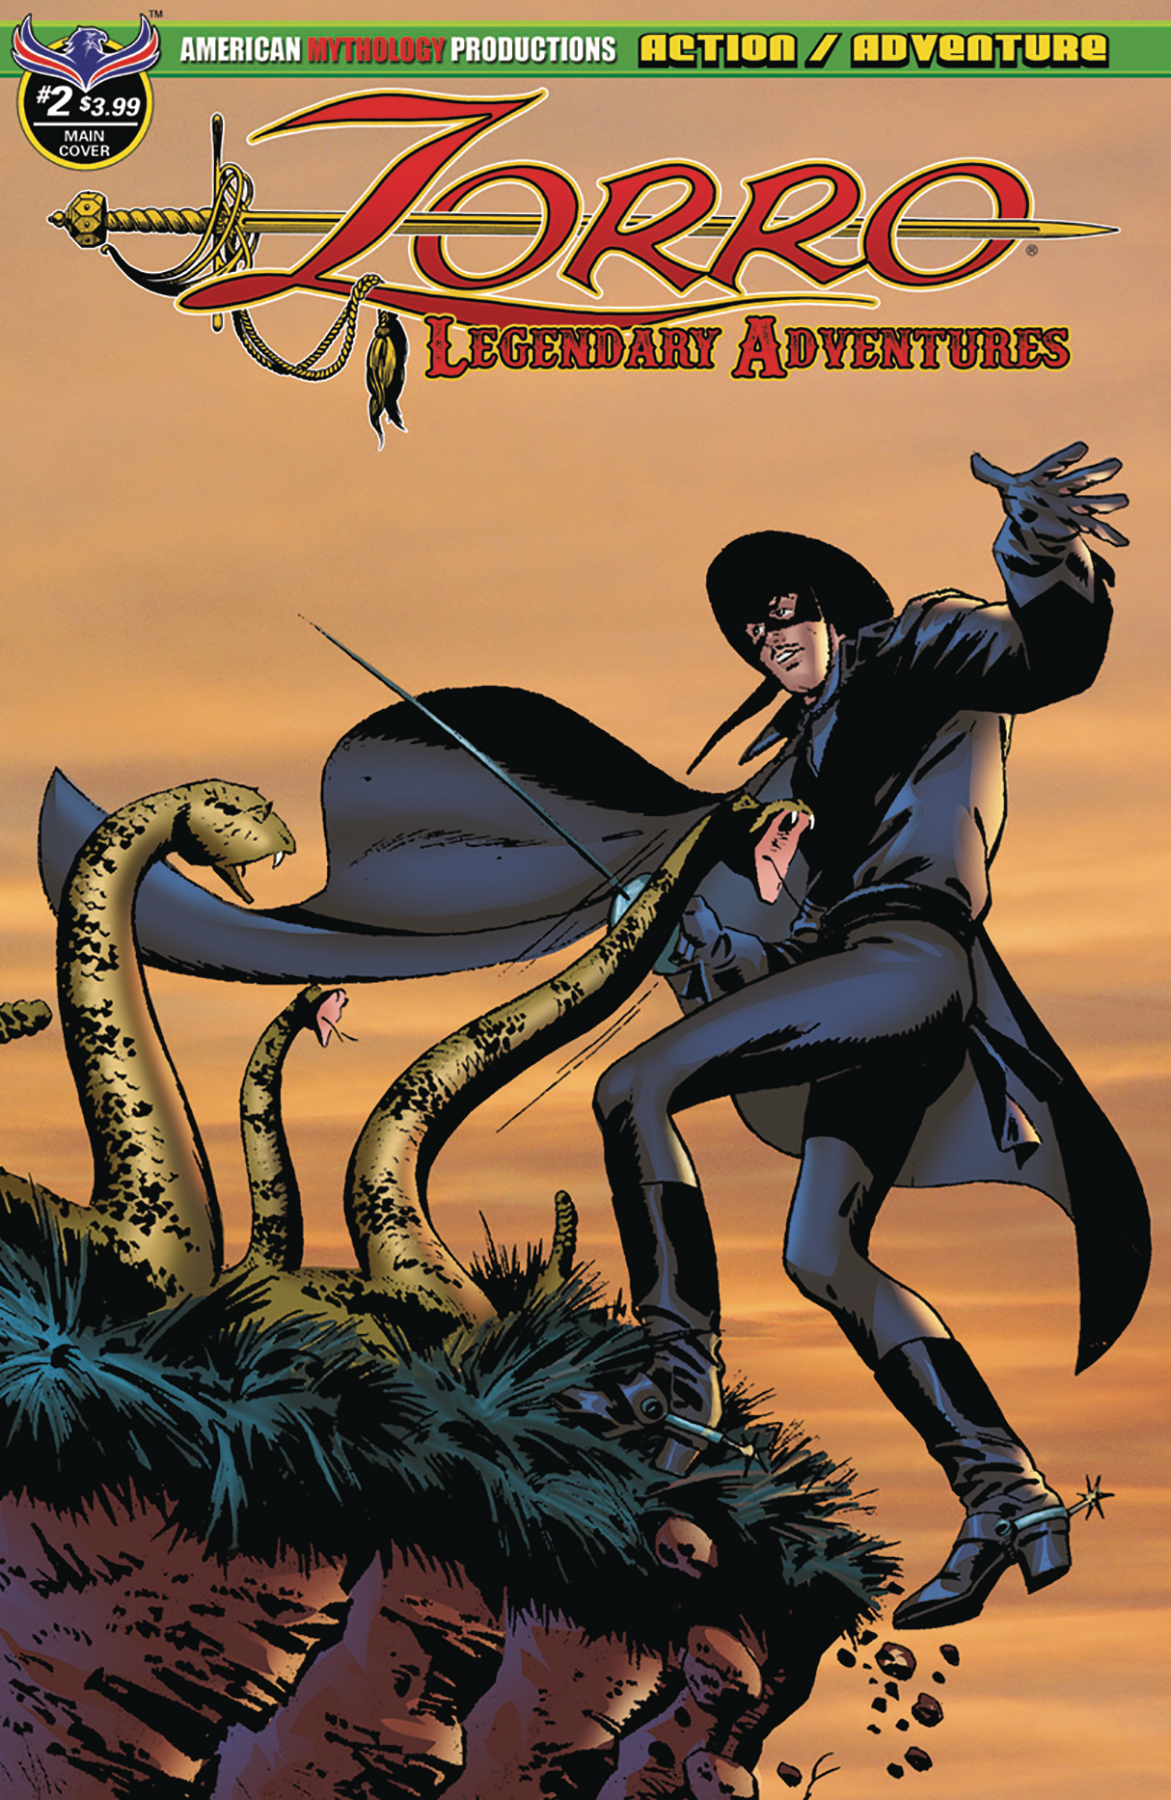 ZORRO LEGENDARY ADVENTURES #2 MAIN CVR